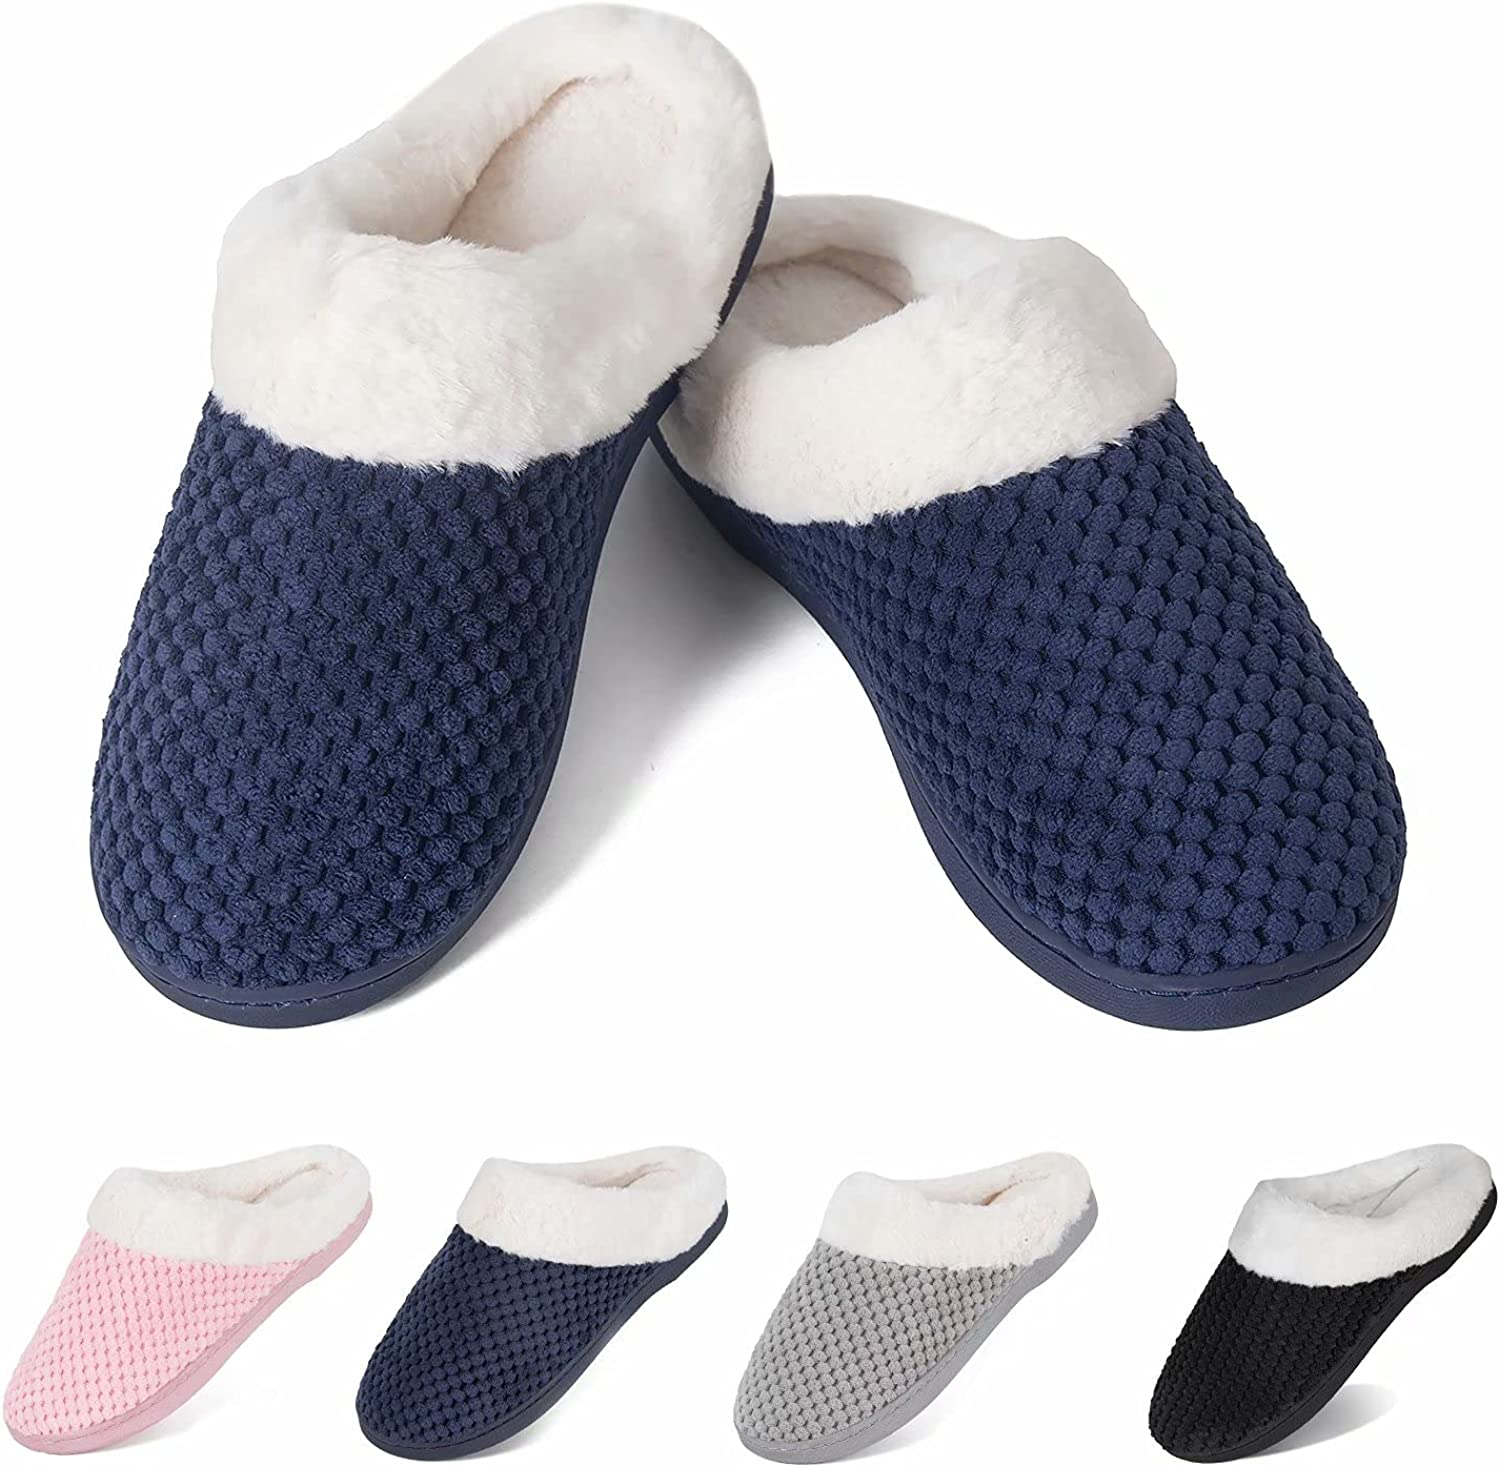 Slippers for Womens Warm Memory Foam Anti-Slip House Shoes Comfortable Cotton Slippers Home Bedroom Shoes Indoor & Outdoor